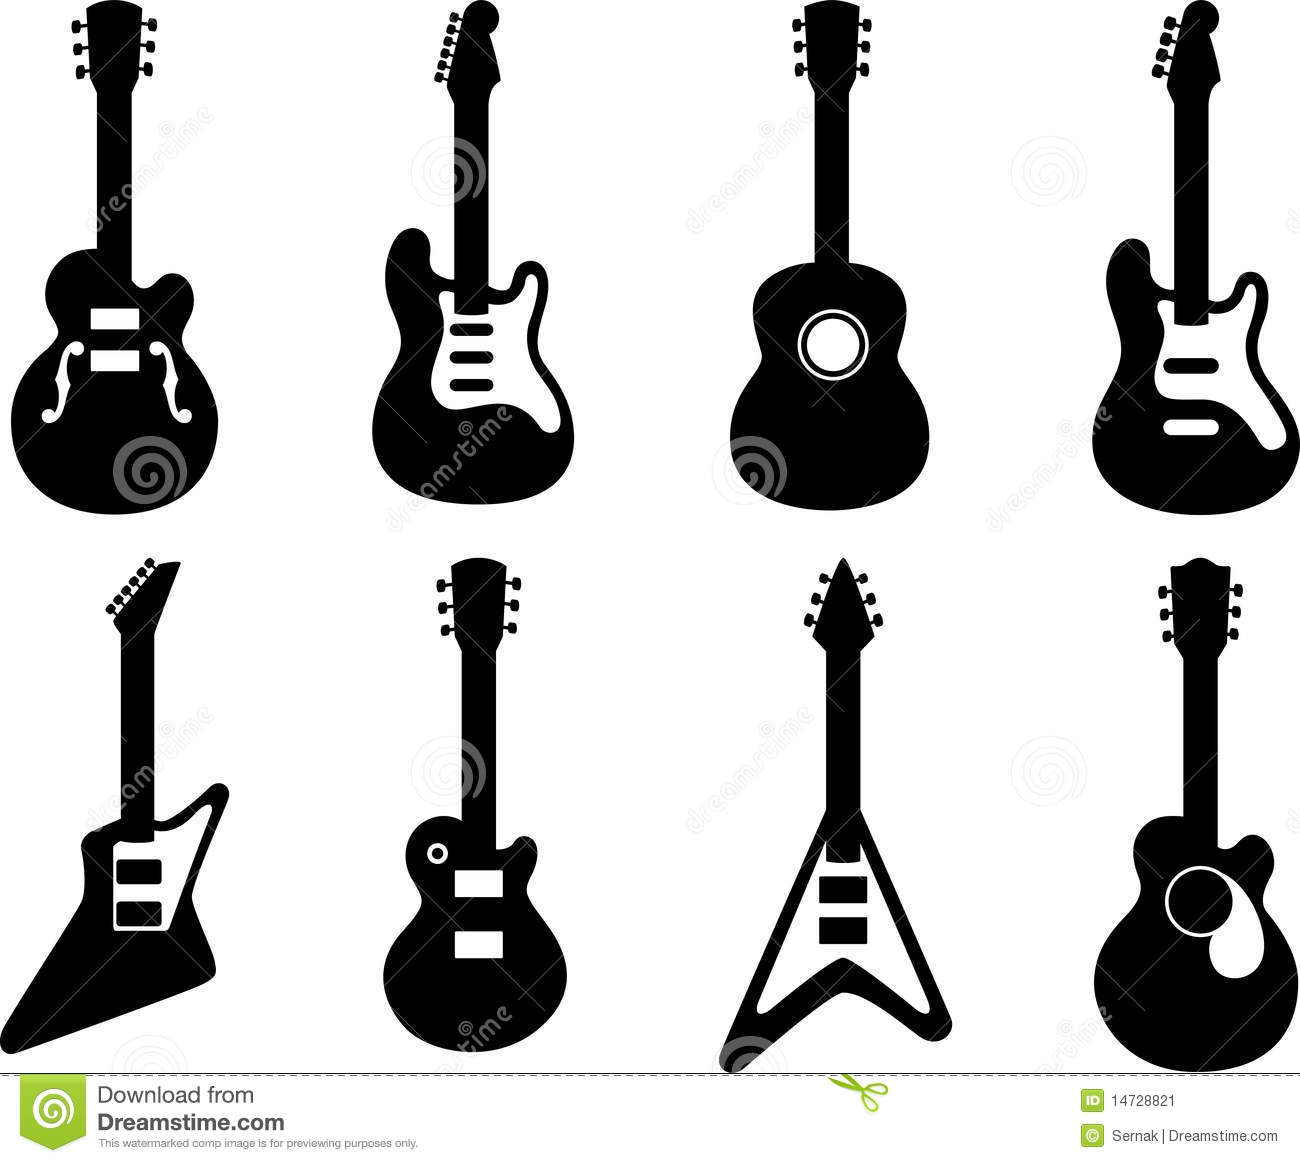 Vector illustration of 8 guitar silhouetteTo see the other guitar sets ...